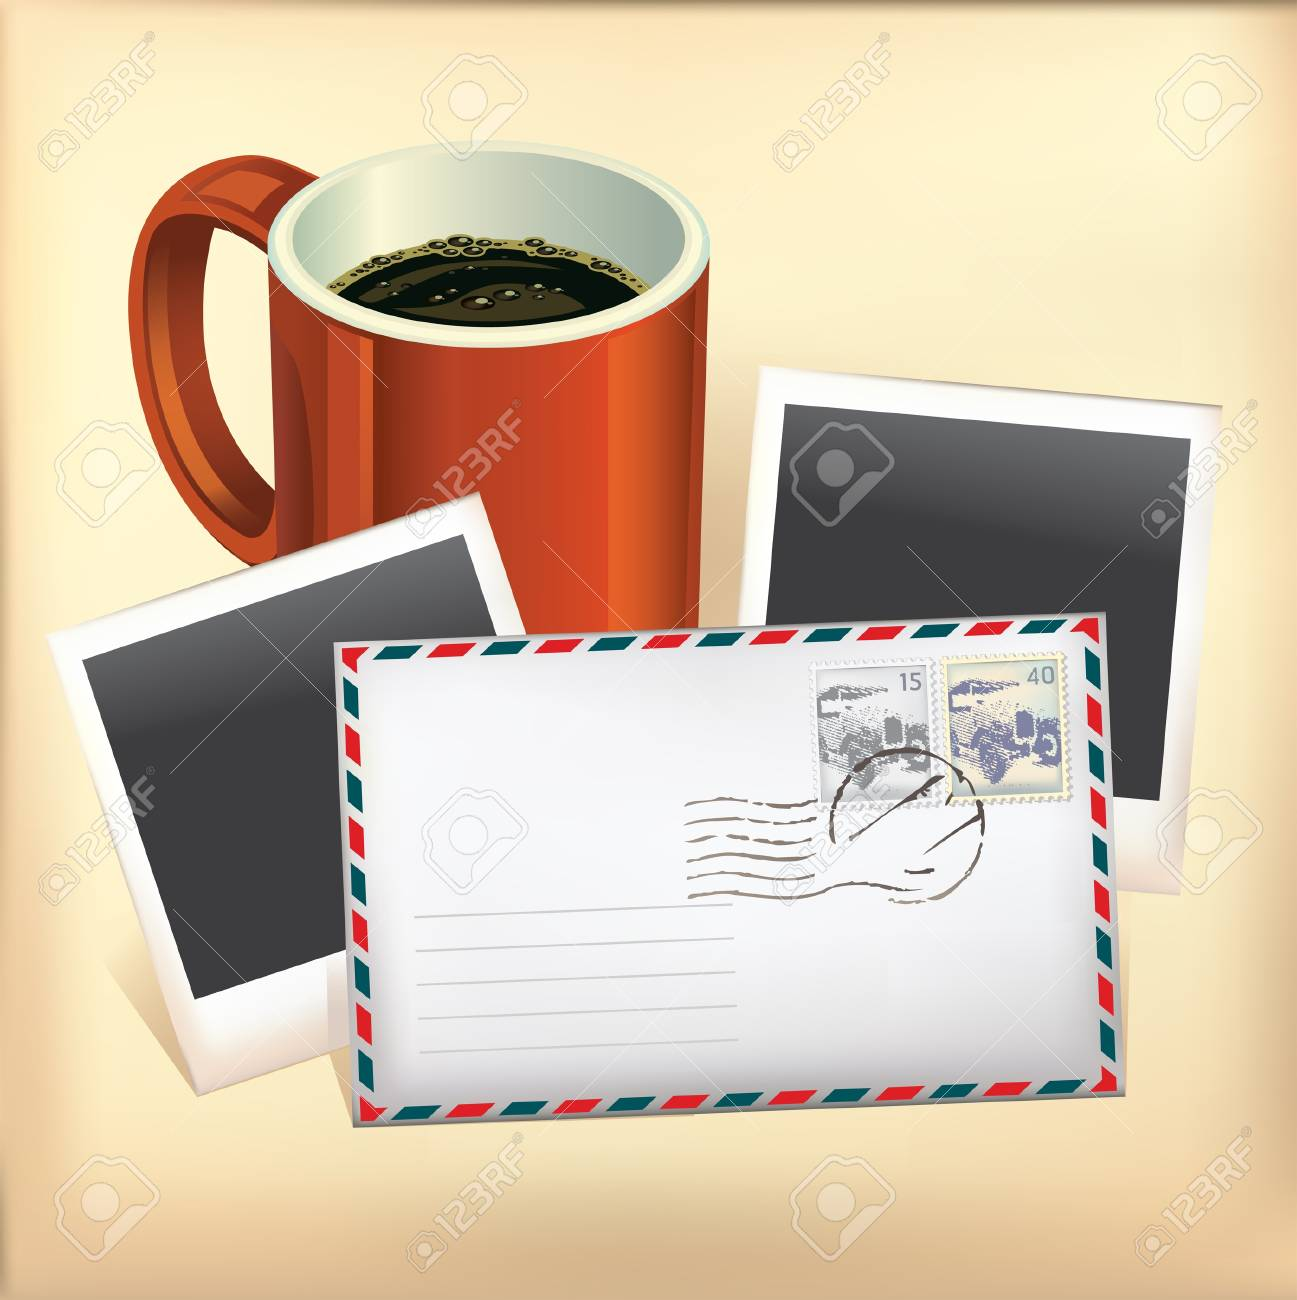 Set of Envelope, Stamp, Coffee cup and Instant photo frame Stock Vector - 13629136